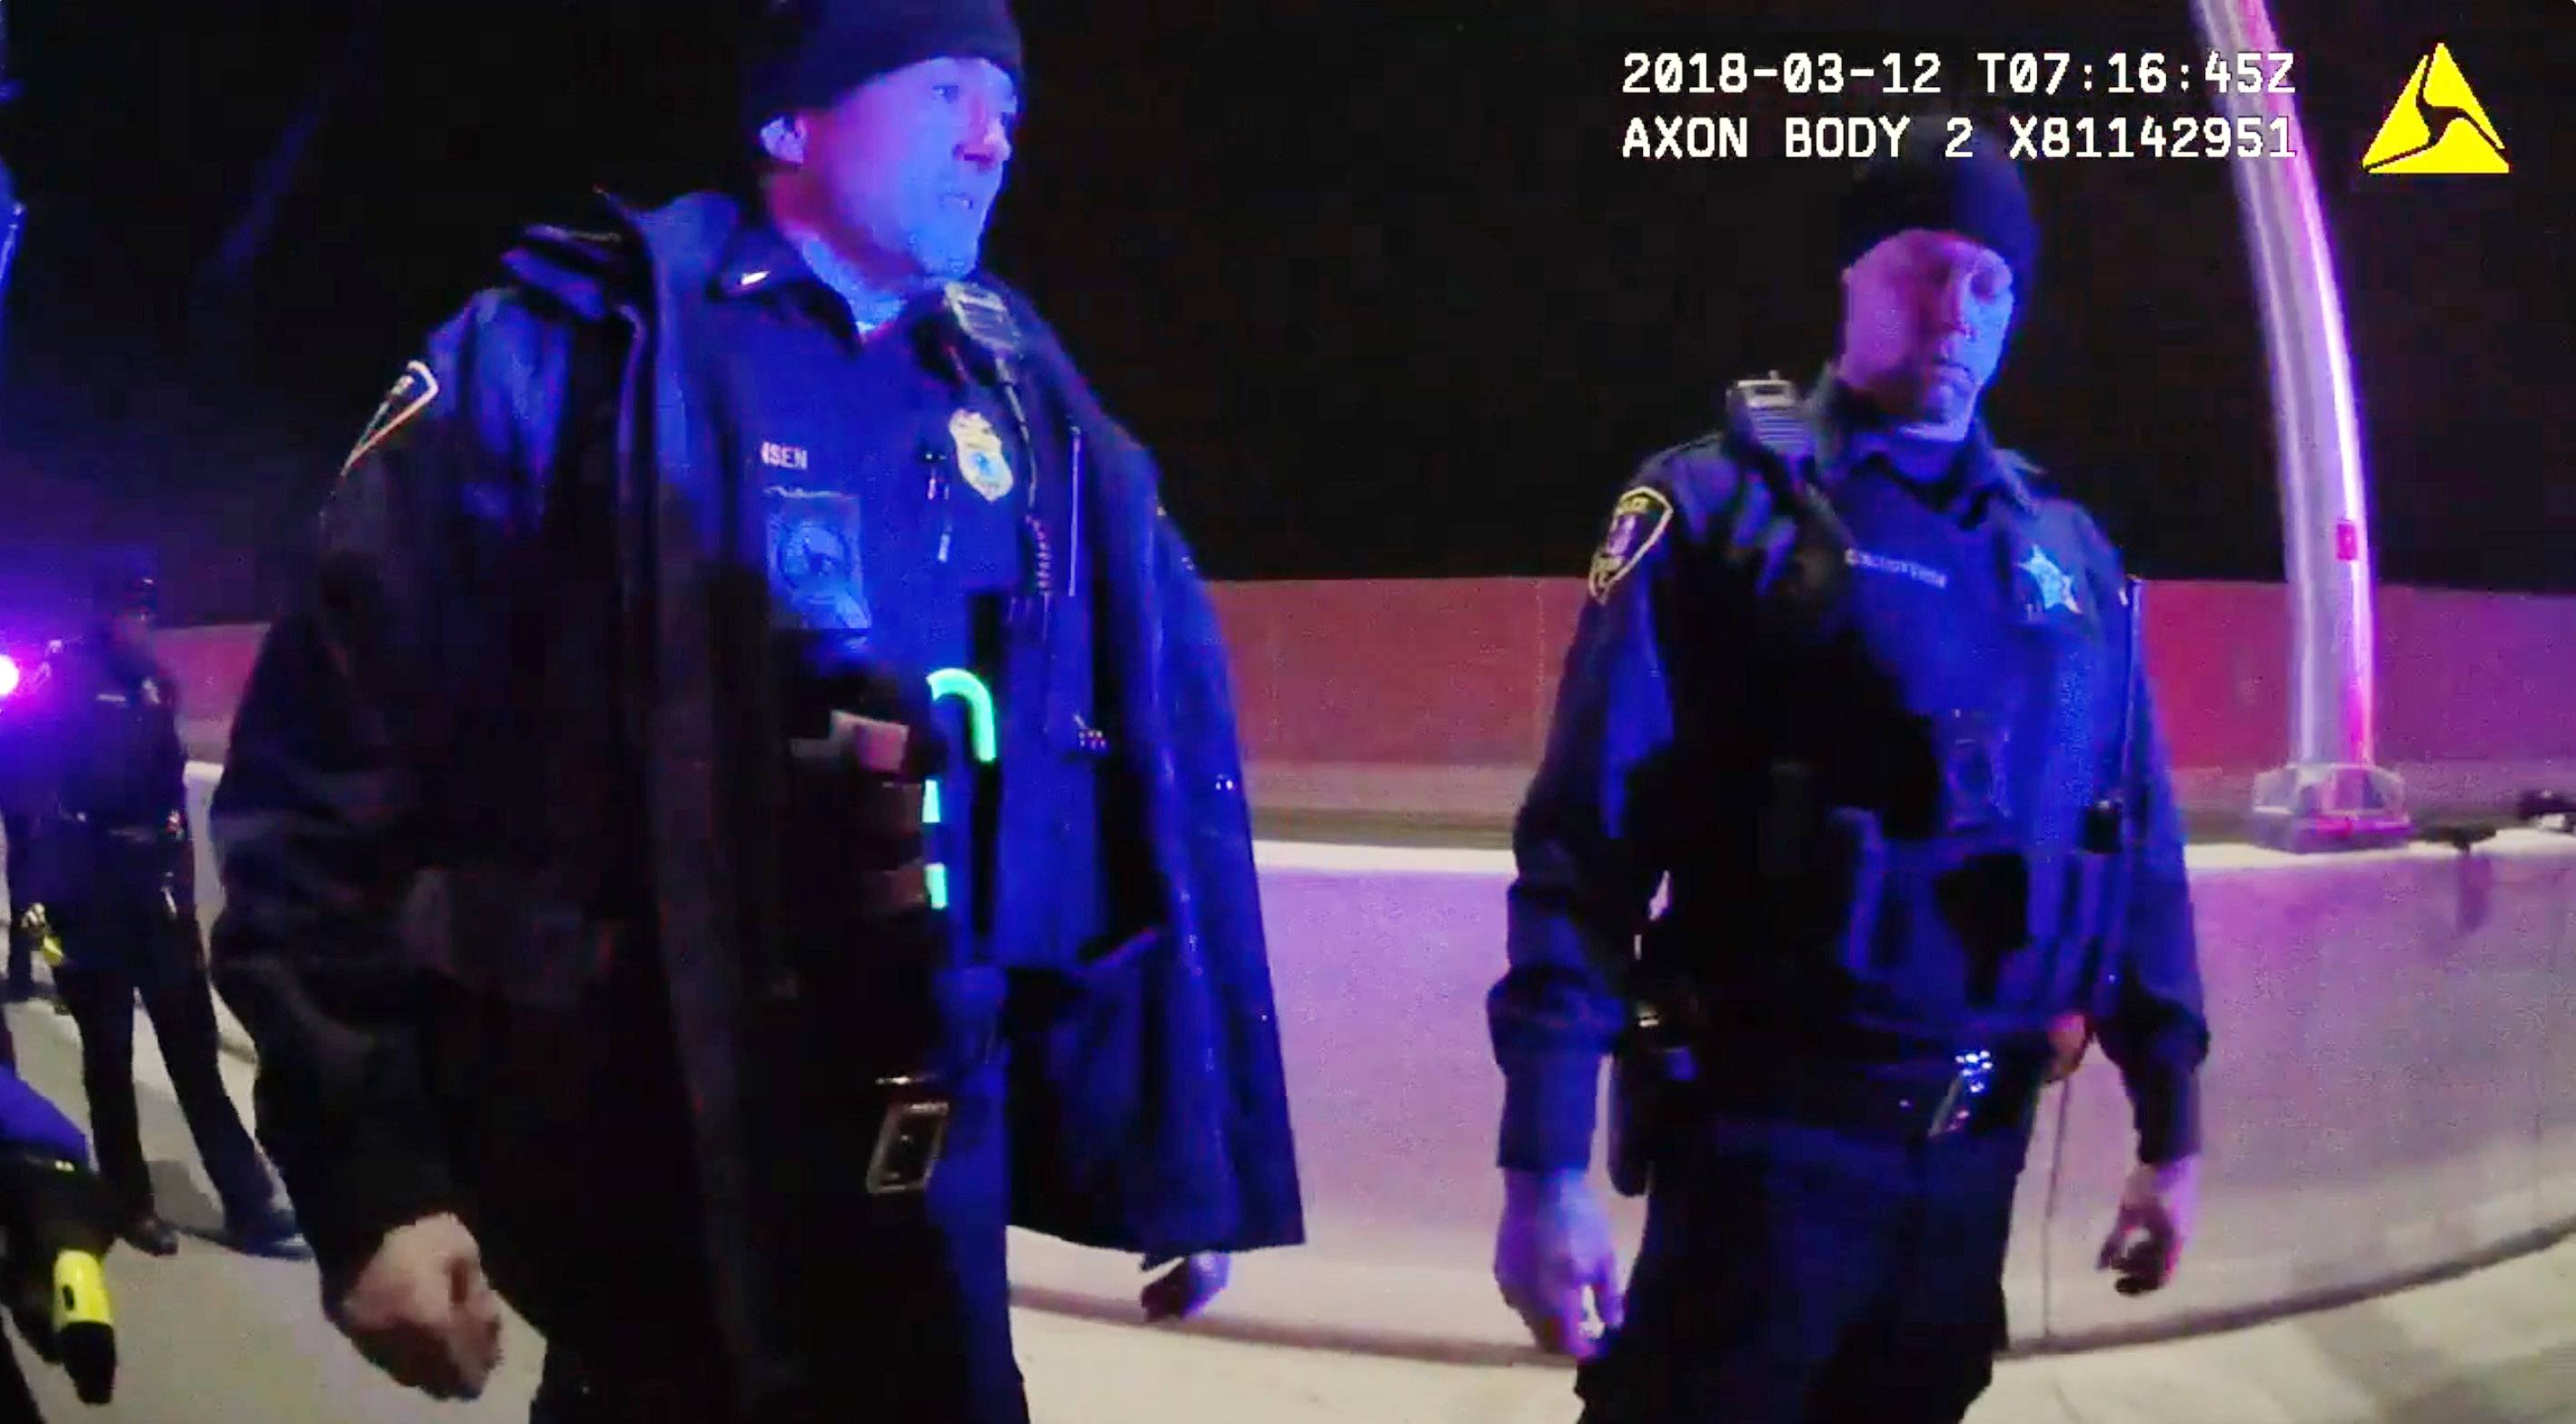 Elgin police body camera video shows Lt. Christian Jensen, left, after he fatally shot resident Decynthia Clements on March 12, 2018. The shooting was found justified by the Cook County state's attorney on Friday, police said.